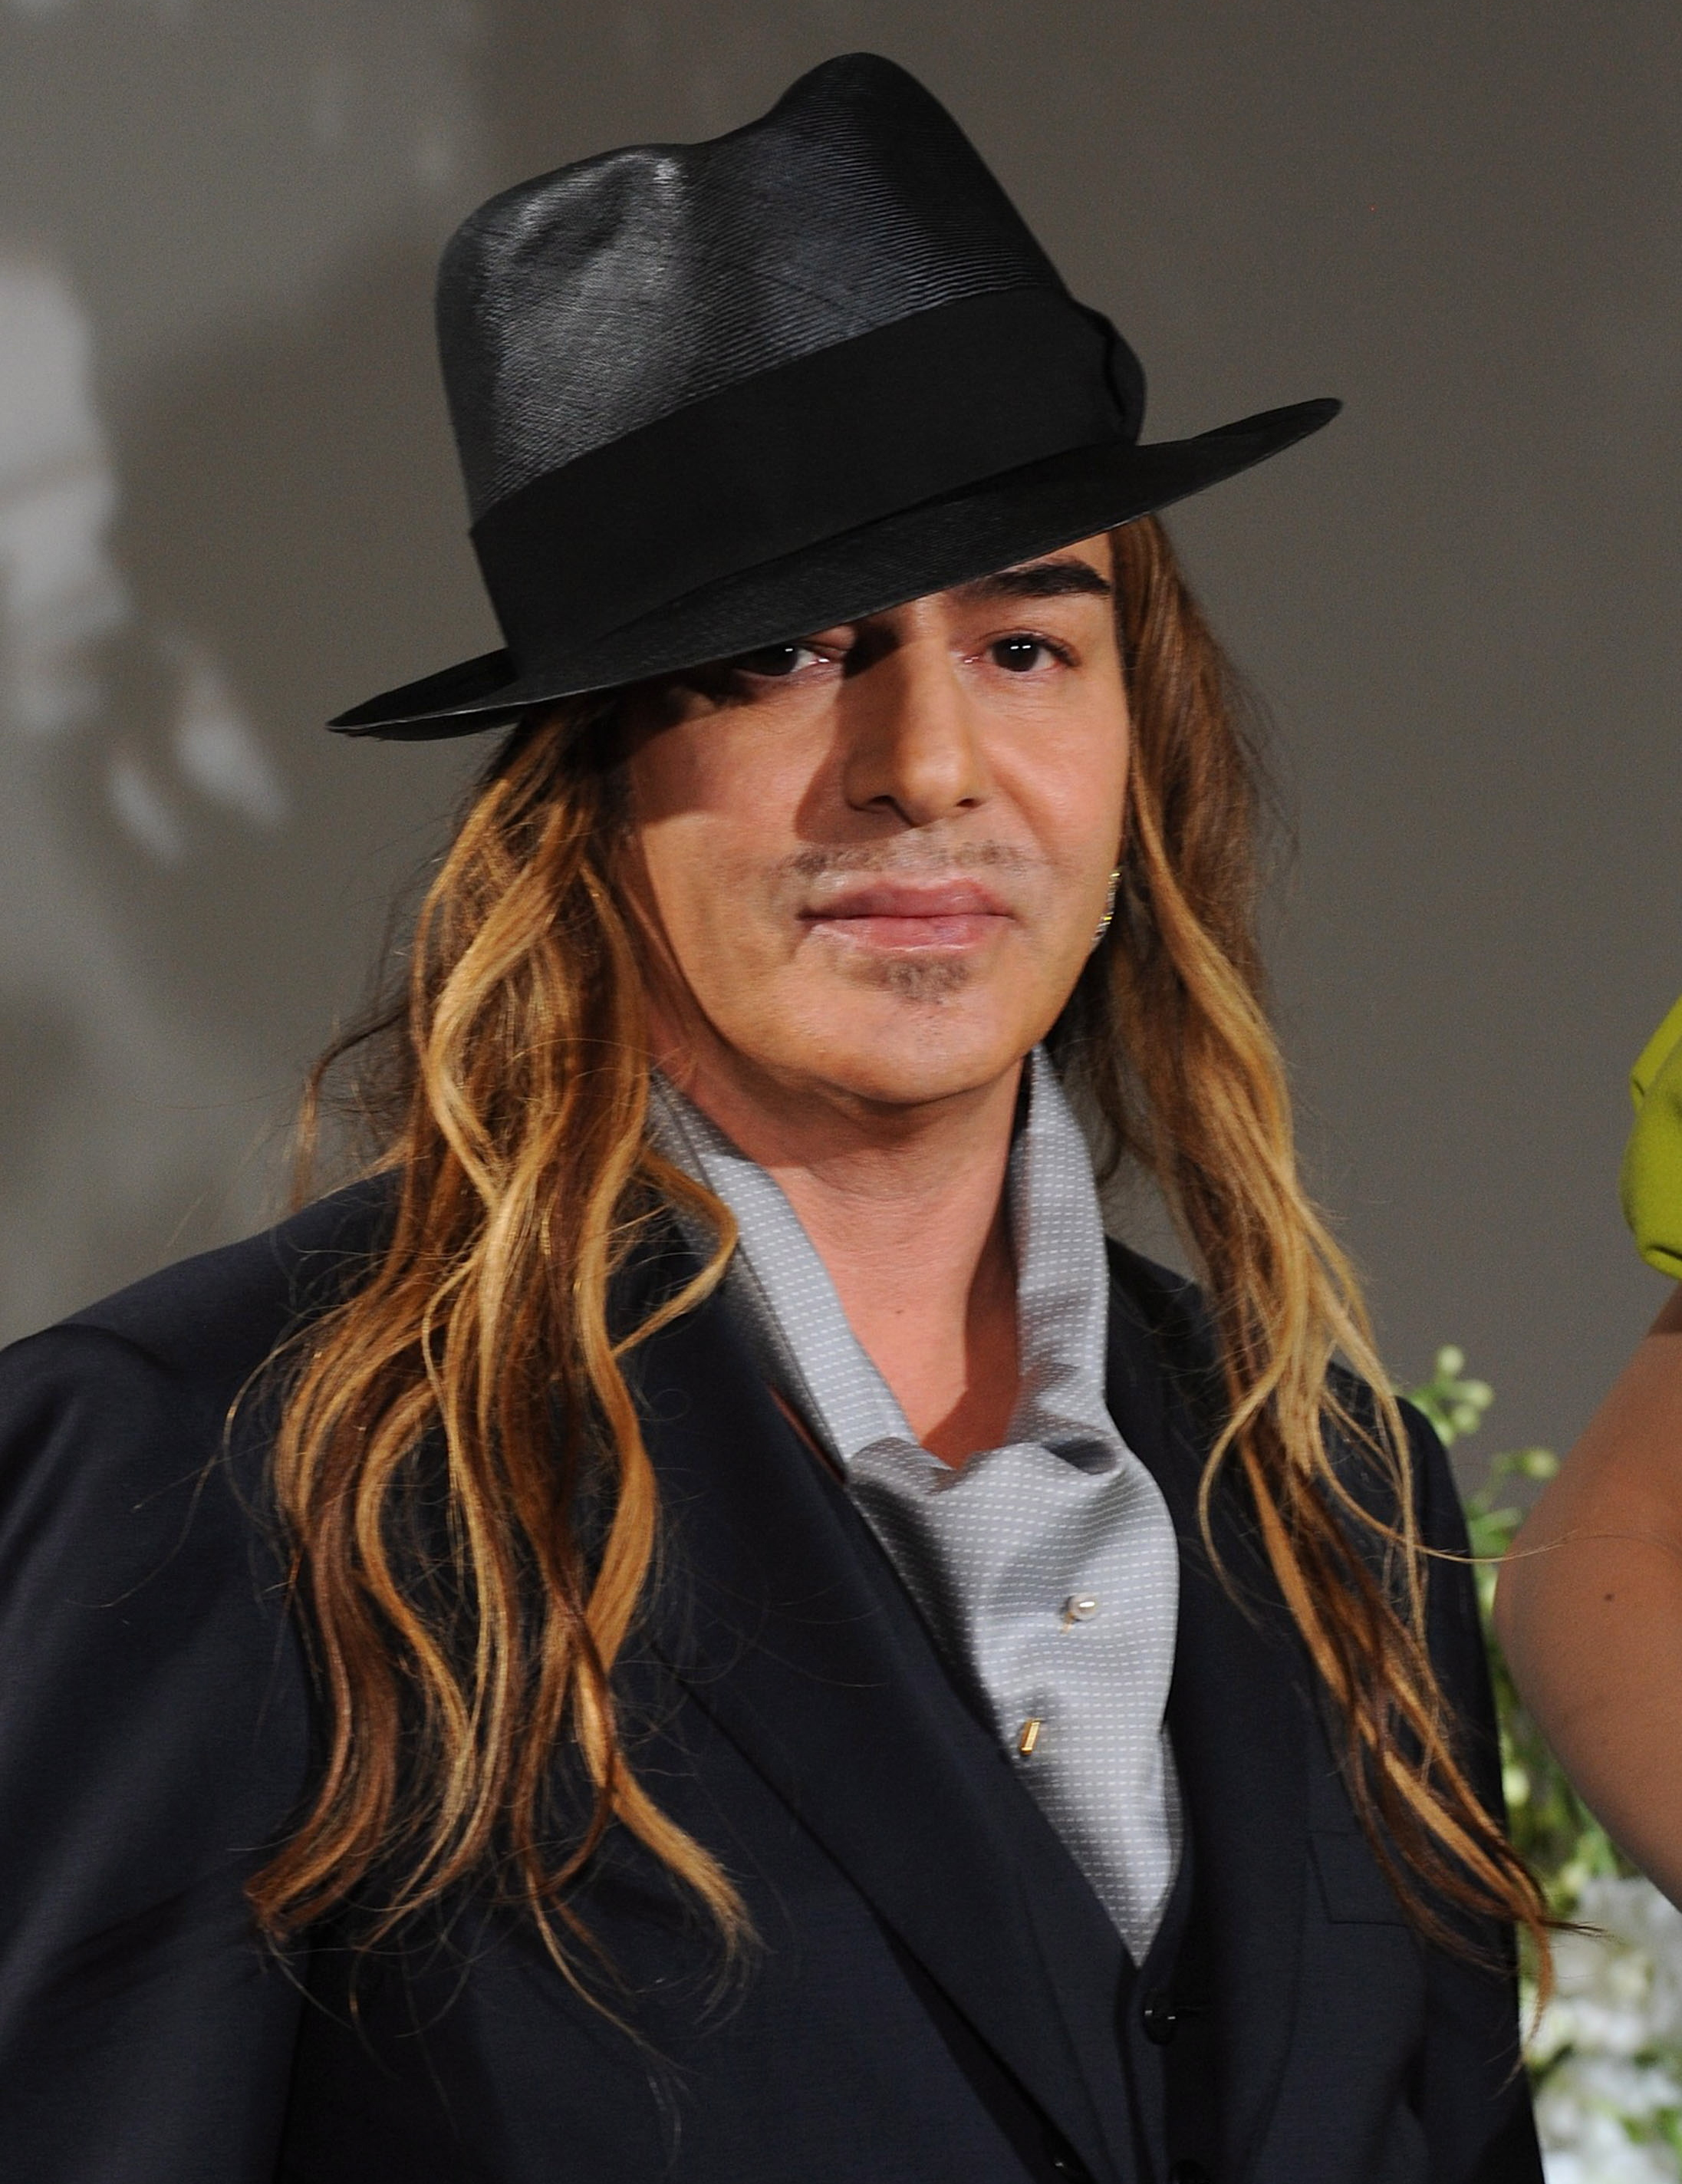 John Galliano Net Worth